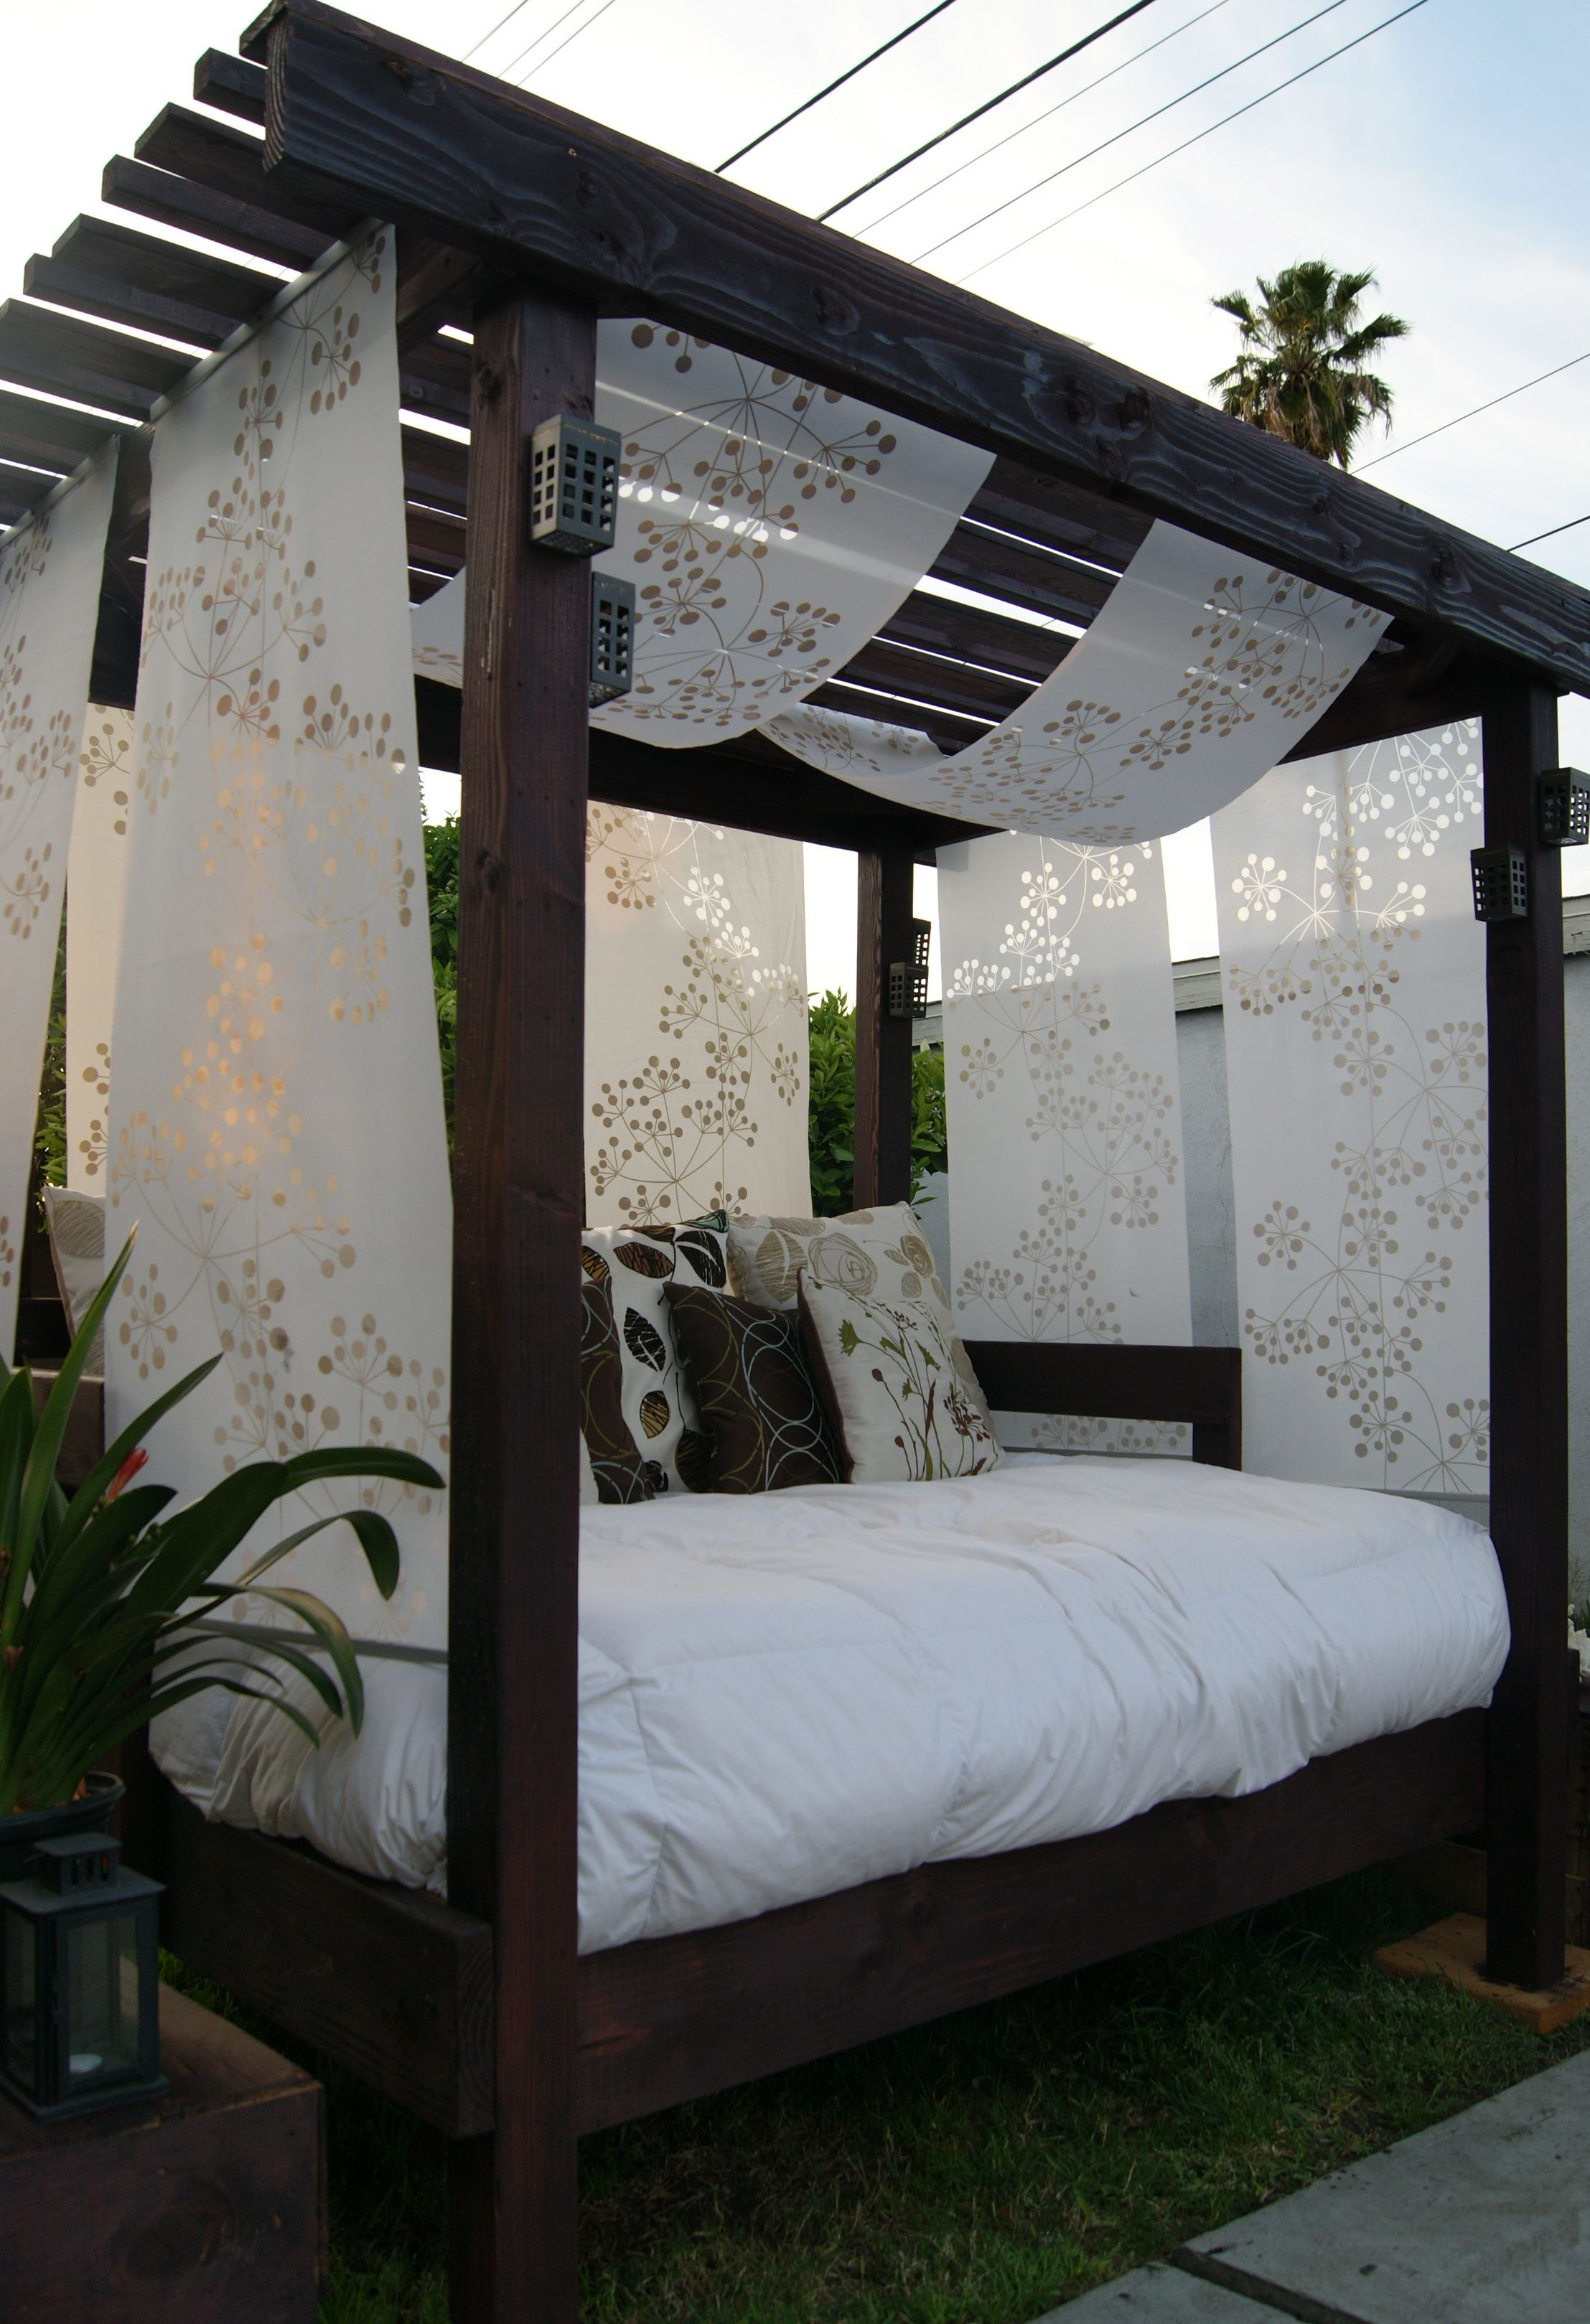 Diy cabana for the backyard with an old used futon i for Pool canopy bed